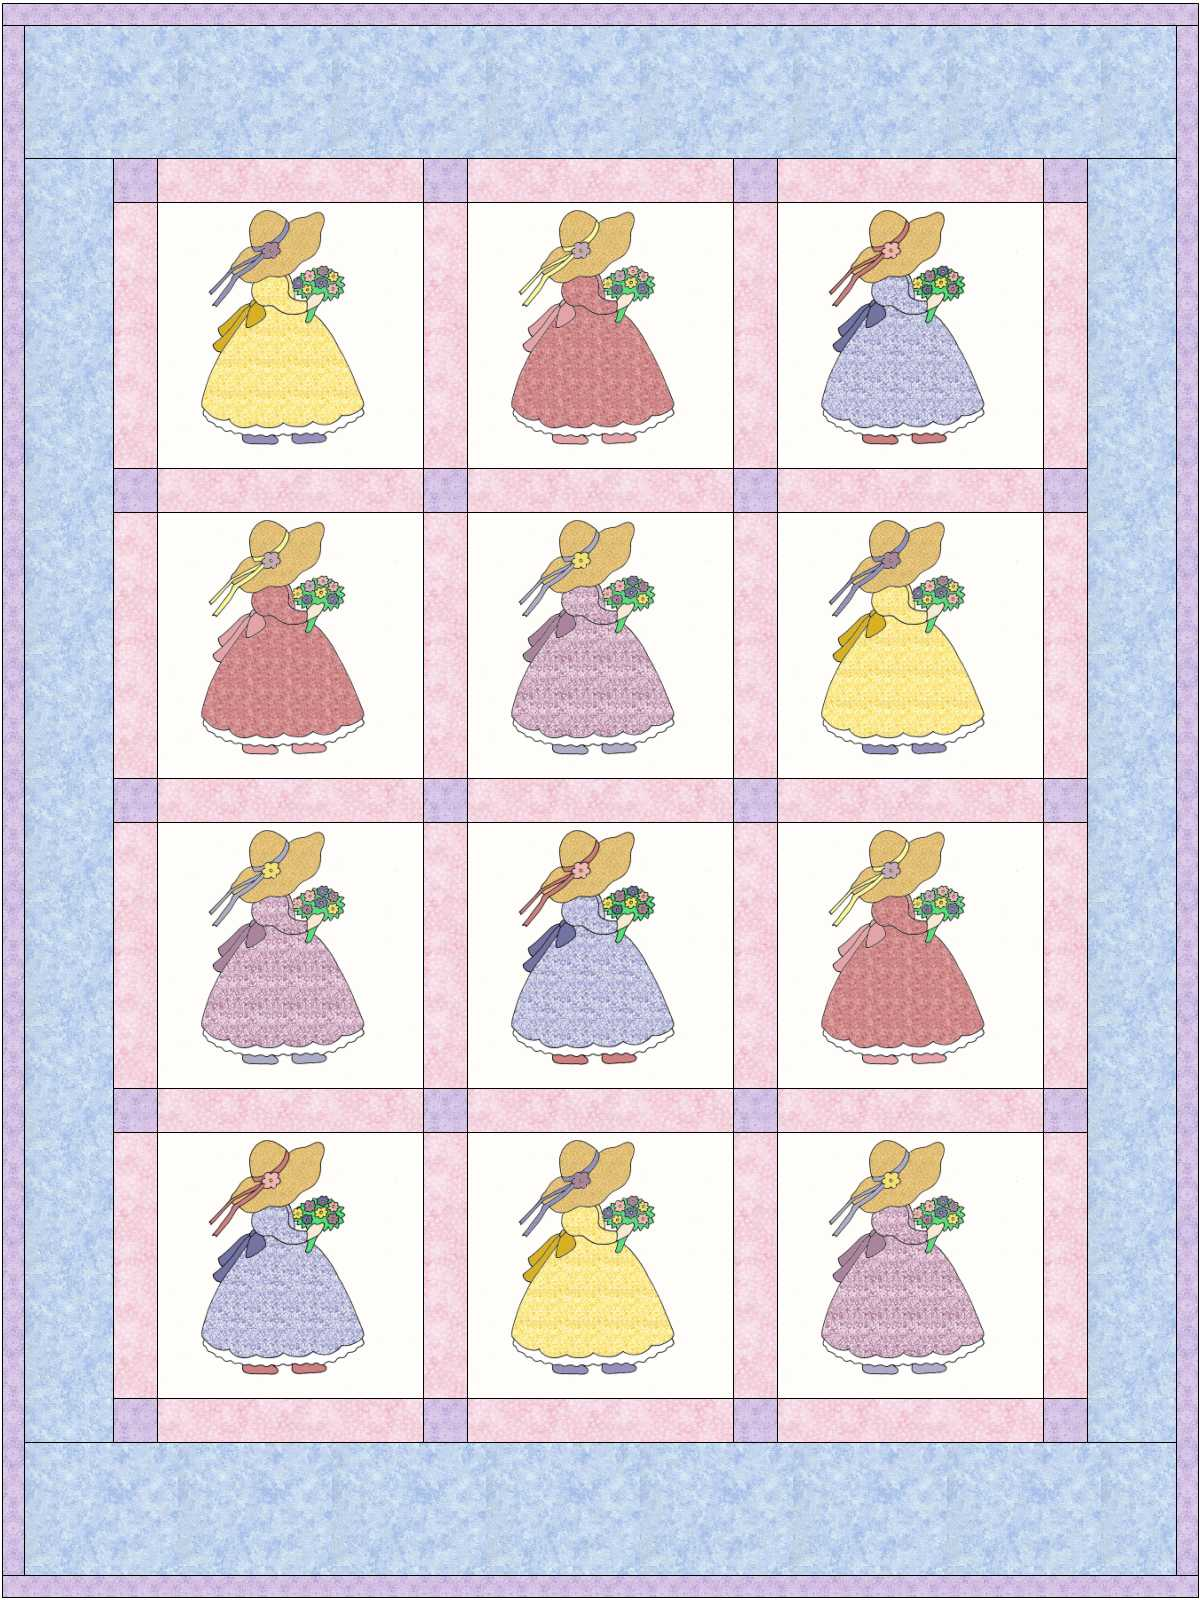 Prairie Cottage Corner - Home of Sunbonnet Sue and Friends: October ...